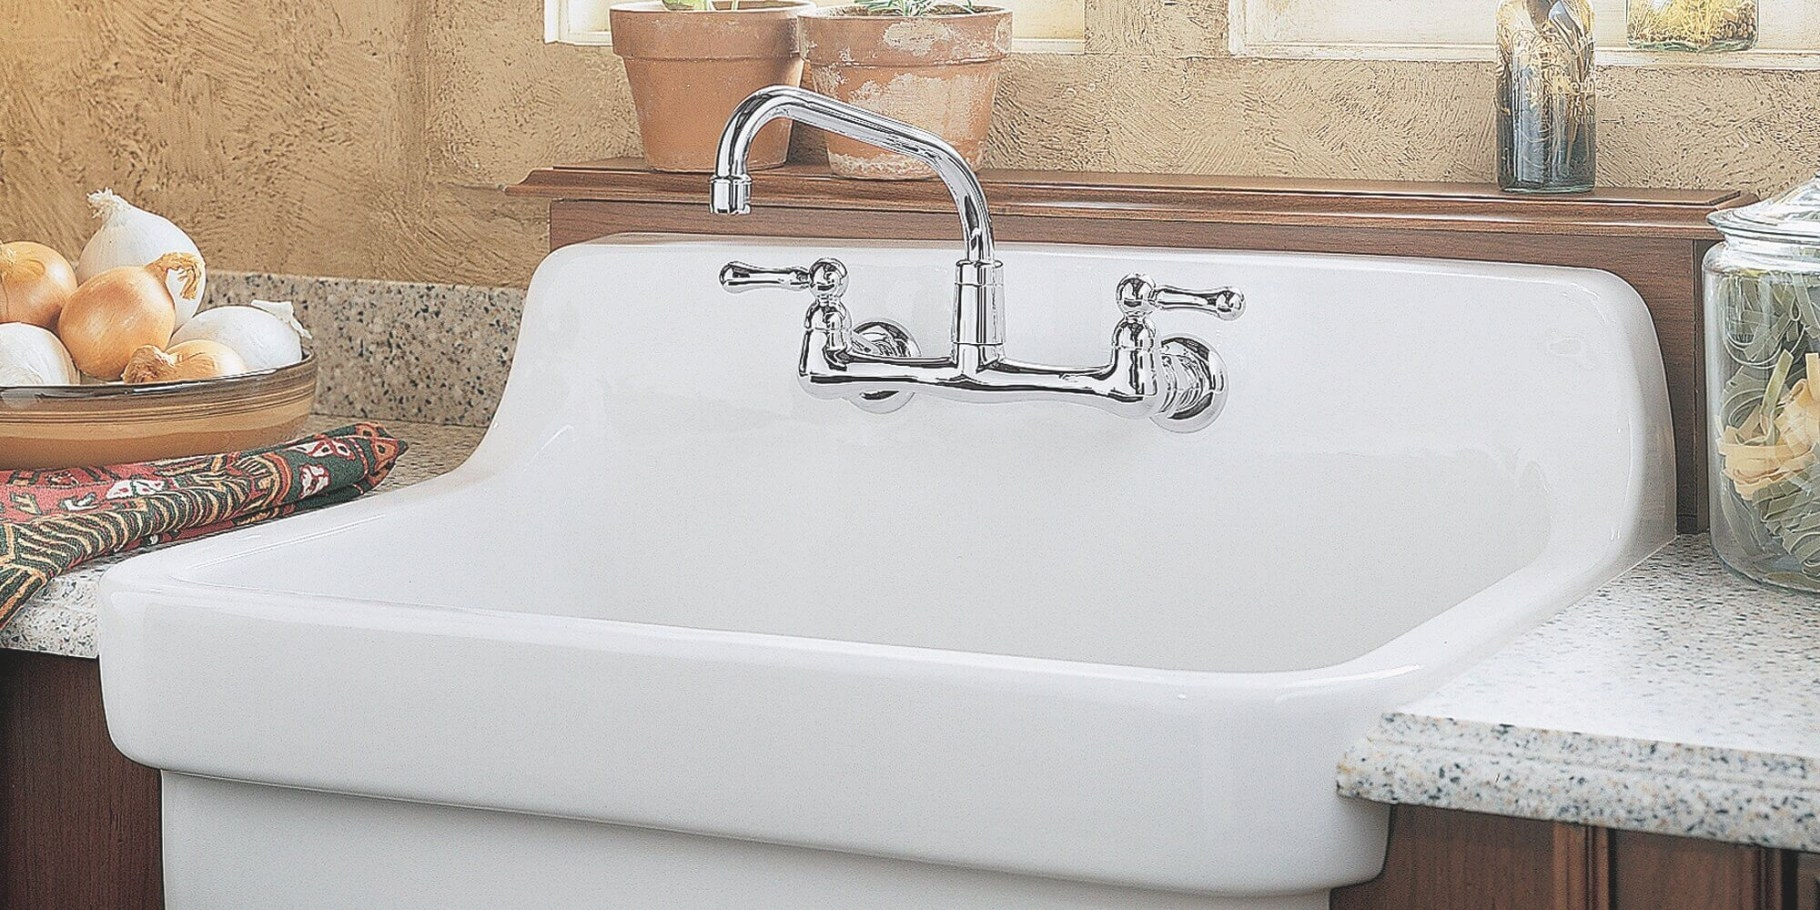 American Standard Plumbing Fixtures At Kitchen & Bath Classics with American Kitchen And Bath